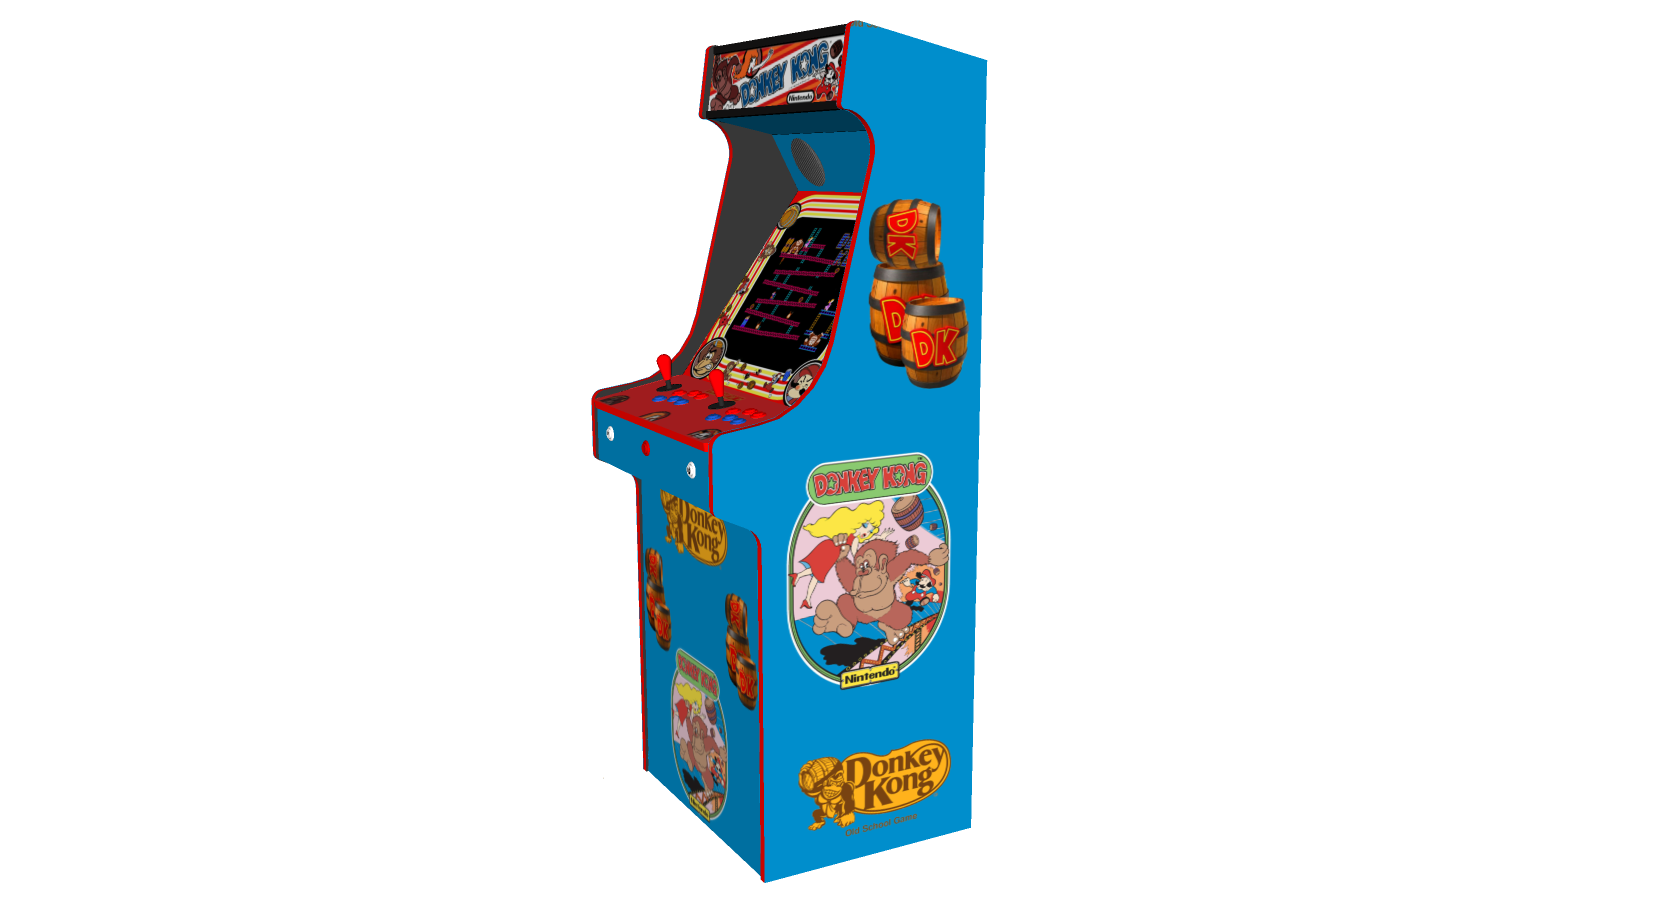 Classic Upright Arcade Machine - Donkey Kong - Right v2